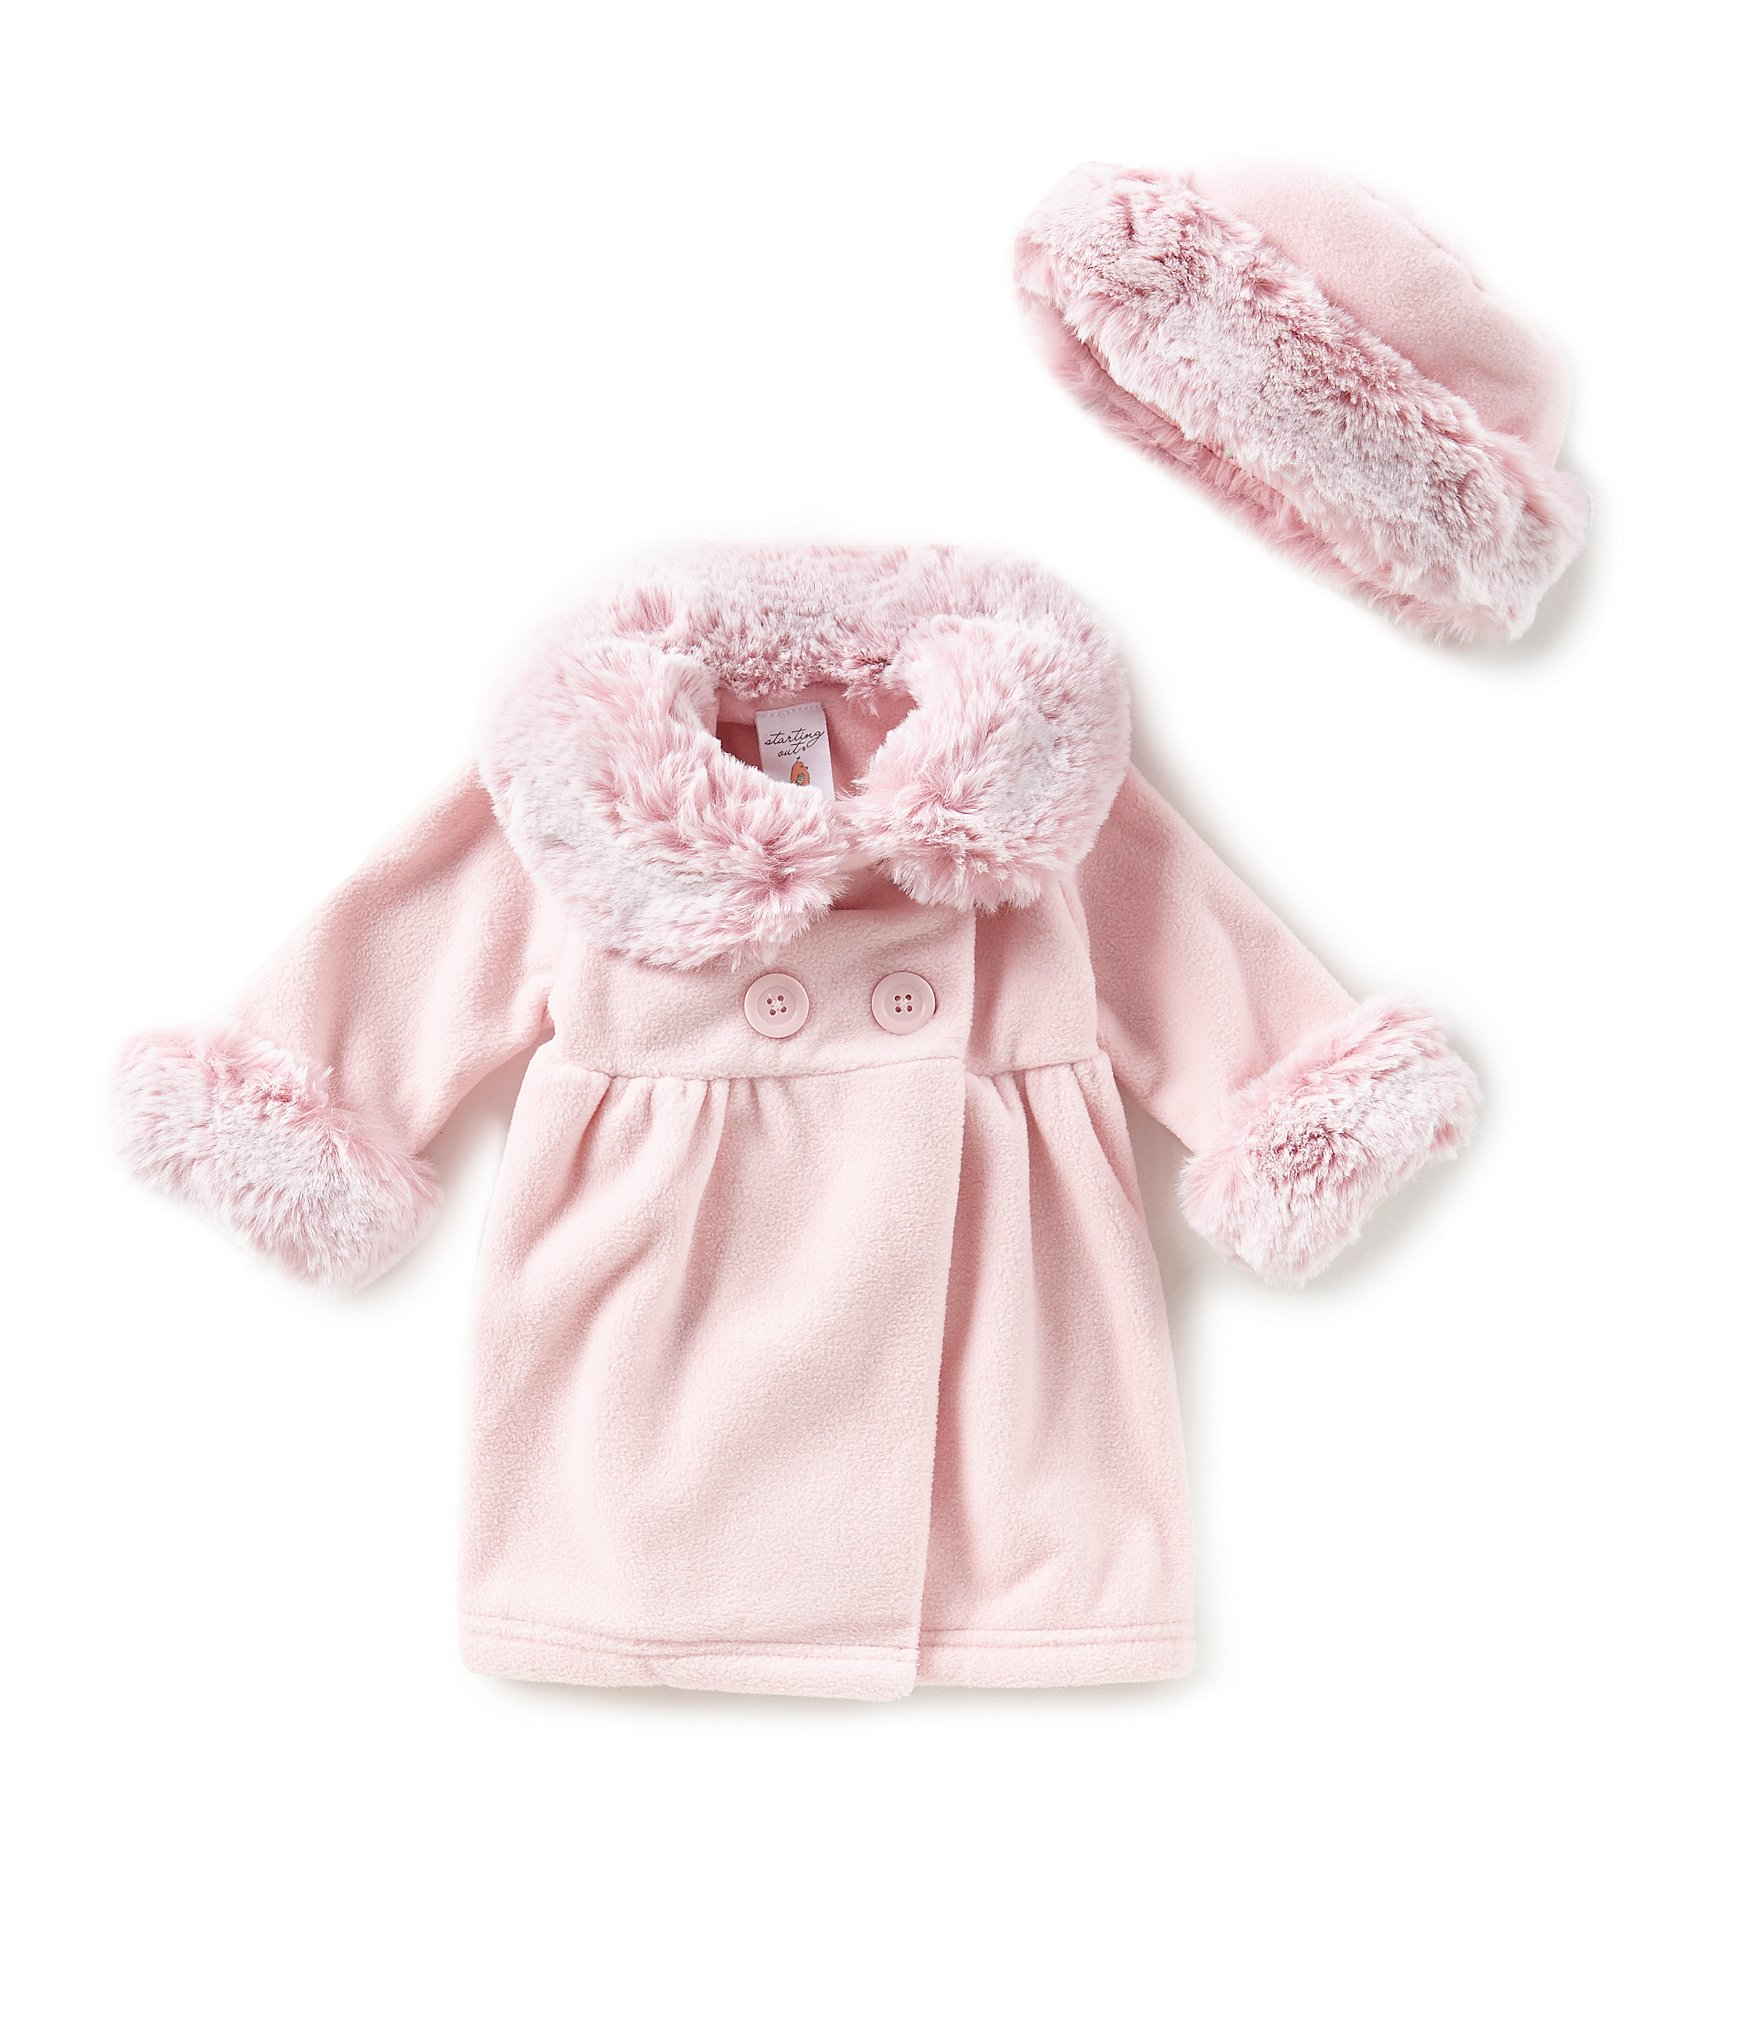 baby girl coats & jackets Perfect for when the weather doesn't play nice this season, our range of baby girl coats and jackets will help keep your little one warm and dry. Our range of hooded jackets from Minoti and Trespass work their waterproof magic through seasonal showers while fleece pieces and gilets are ideal layering pieces on cooler days.